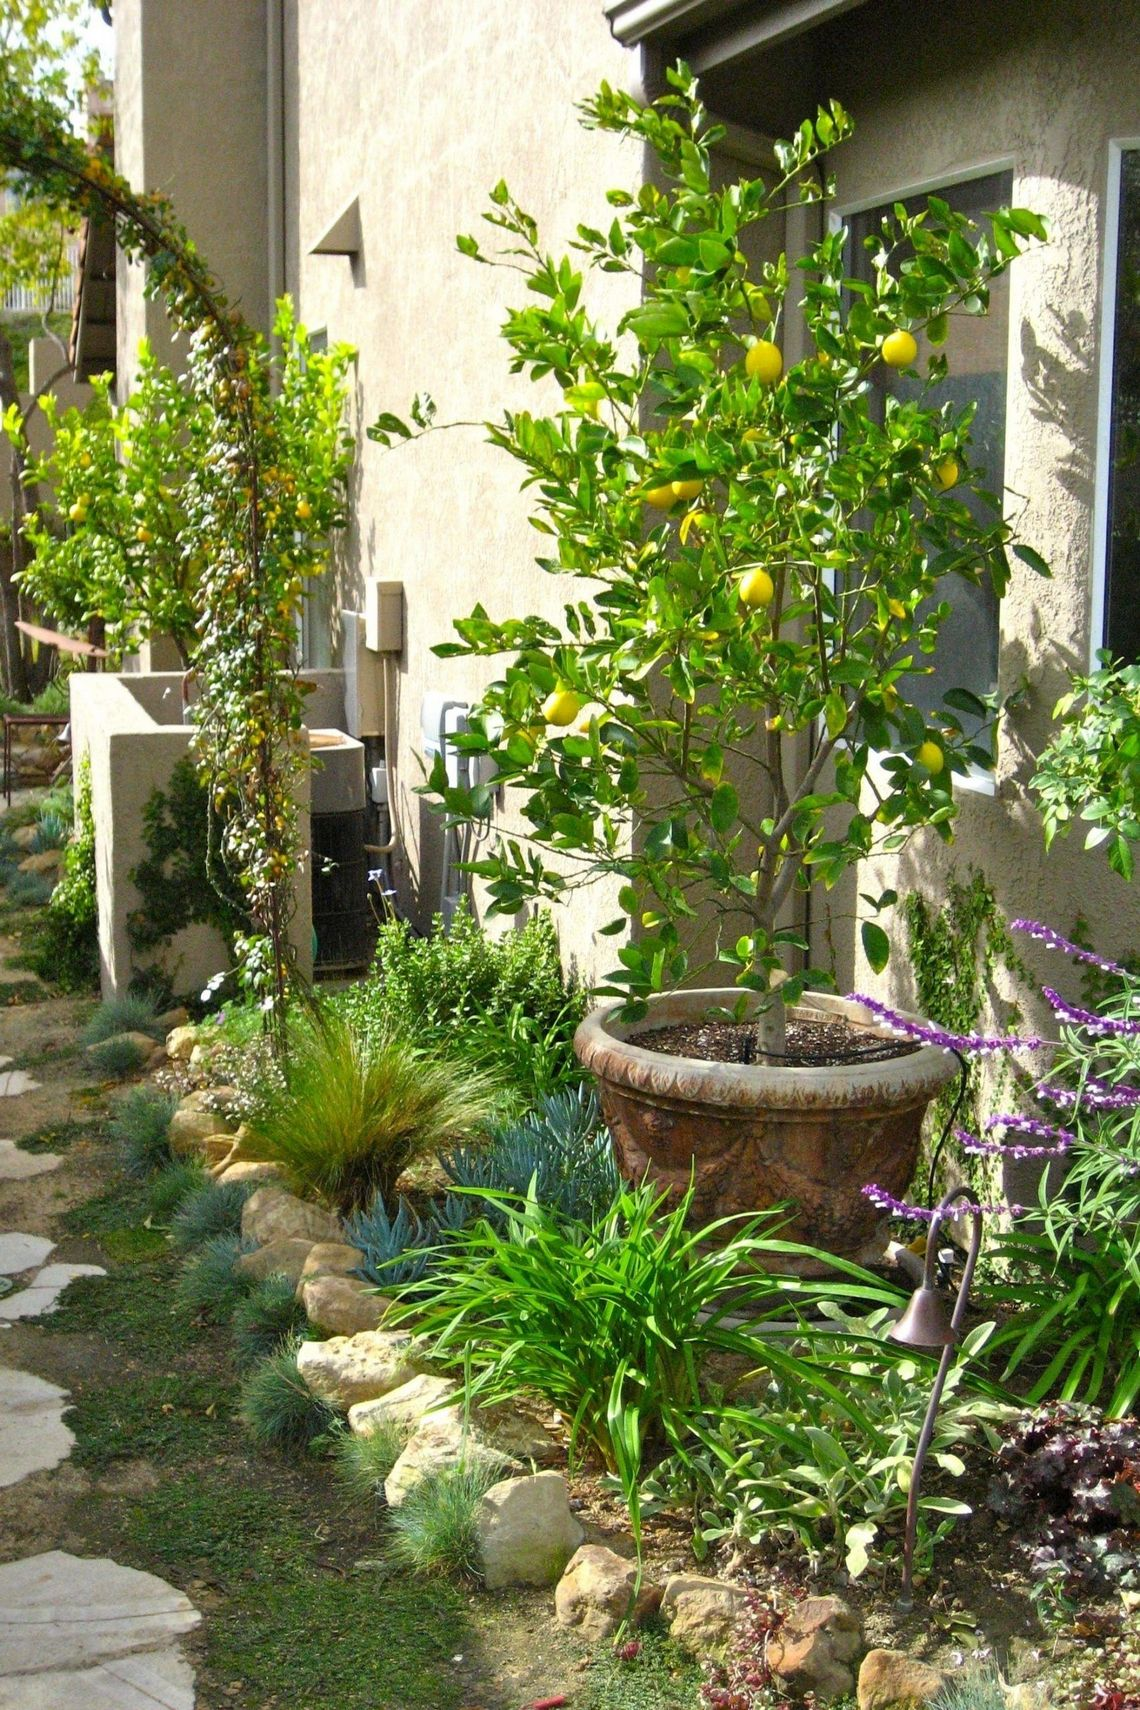 91 Small Backyard Landscape Decoration Models Are Simple And Look Creative 45